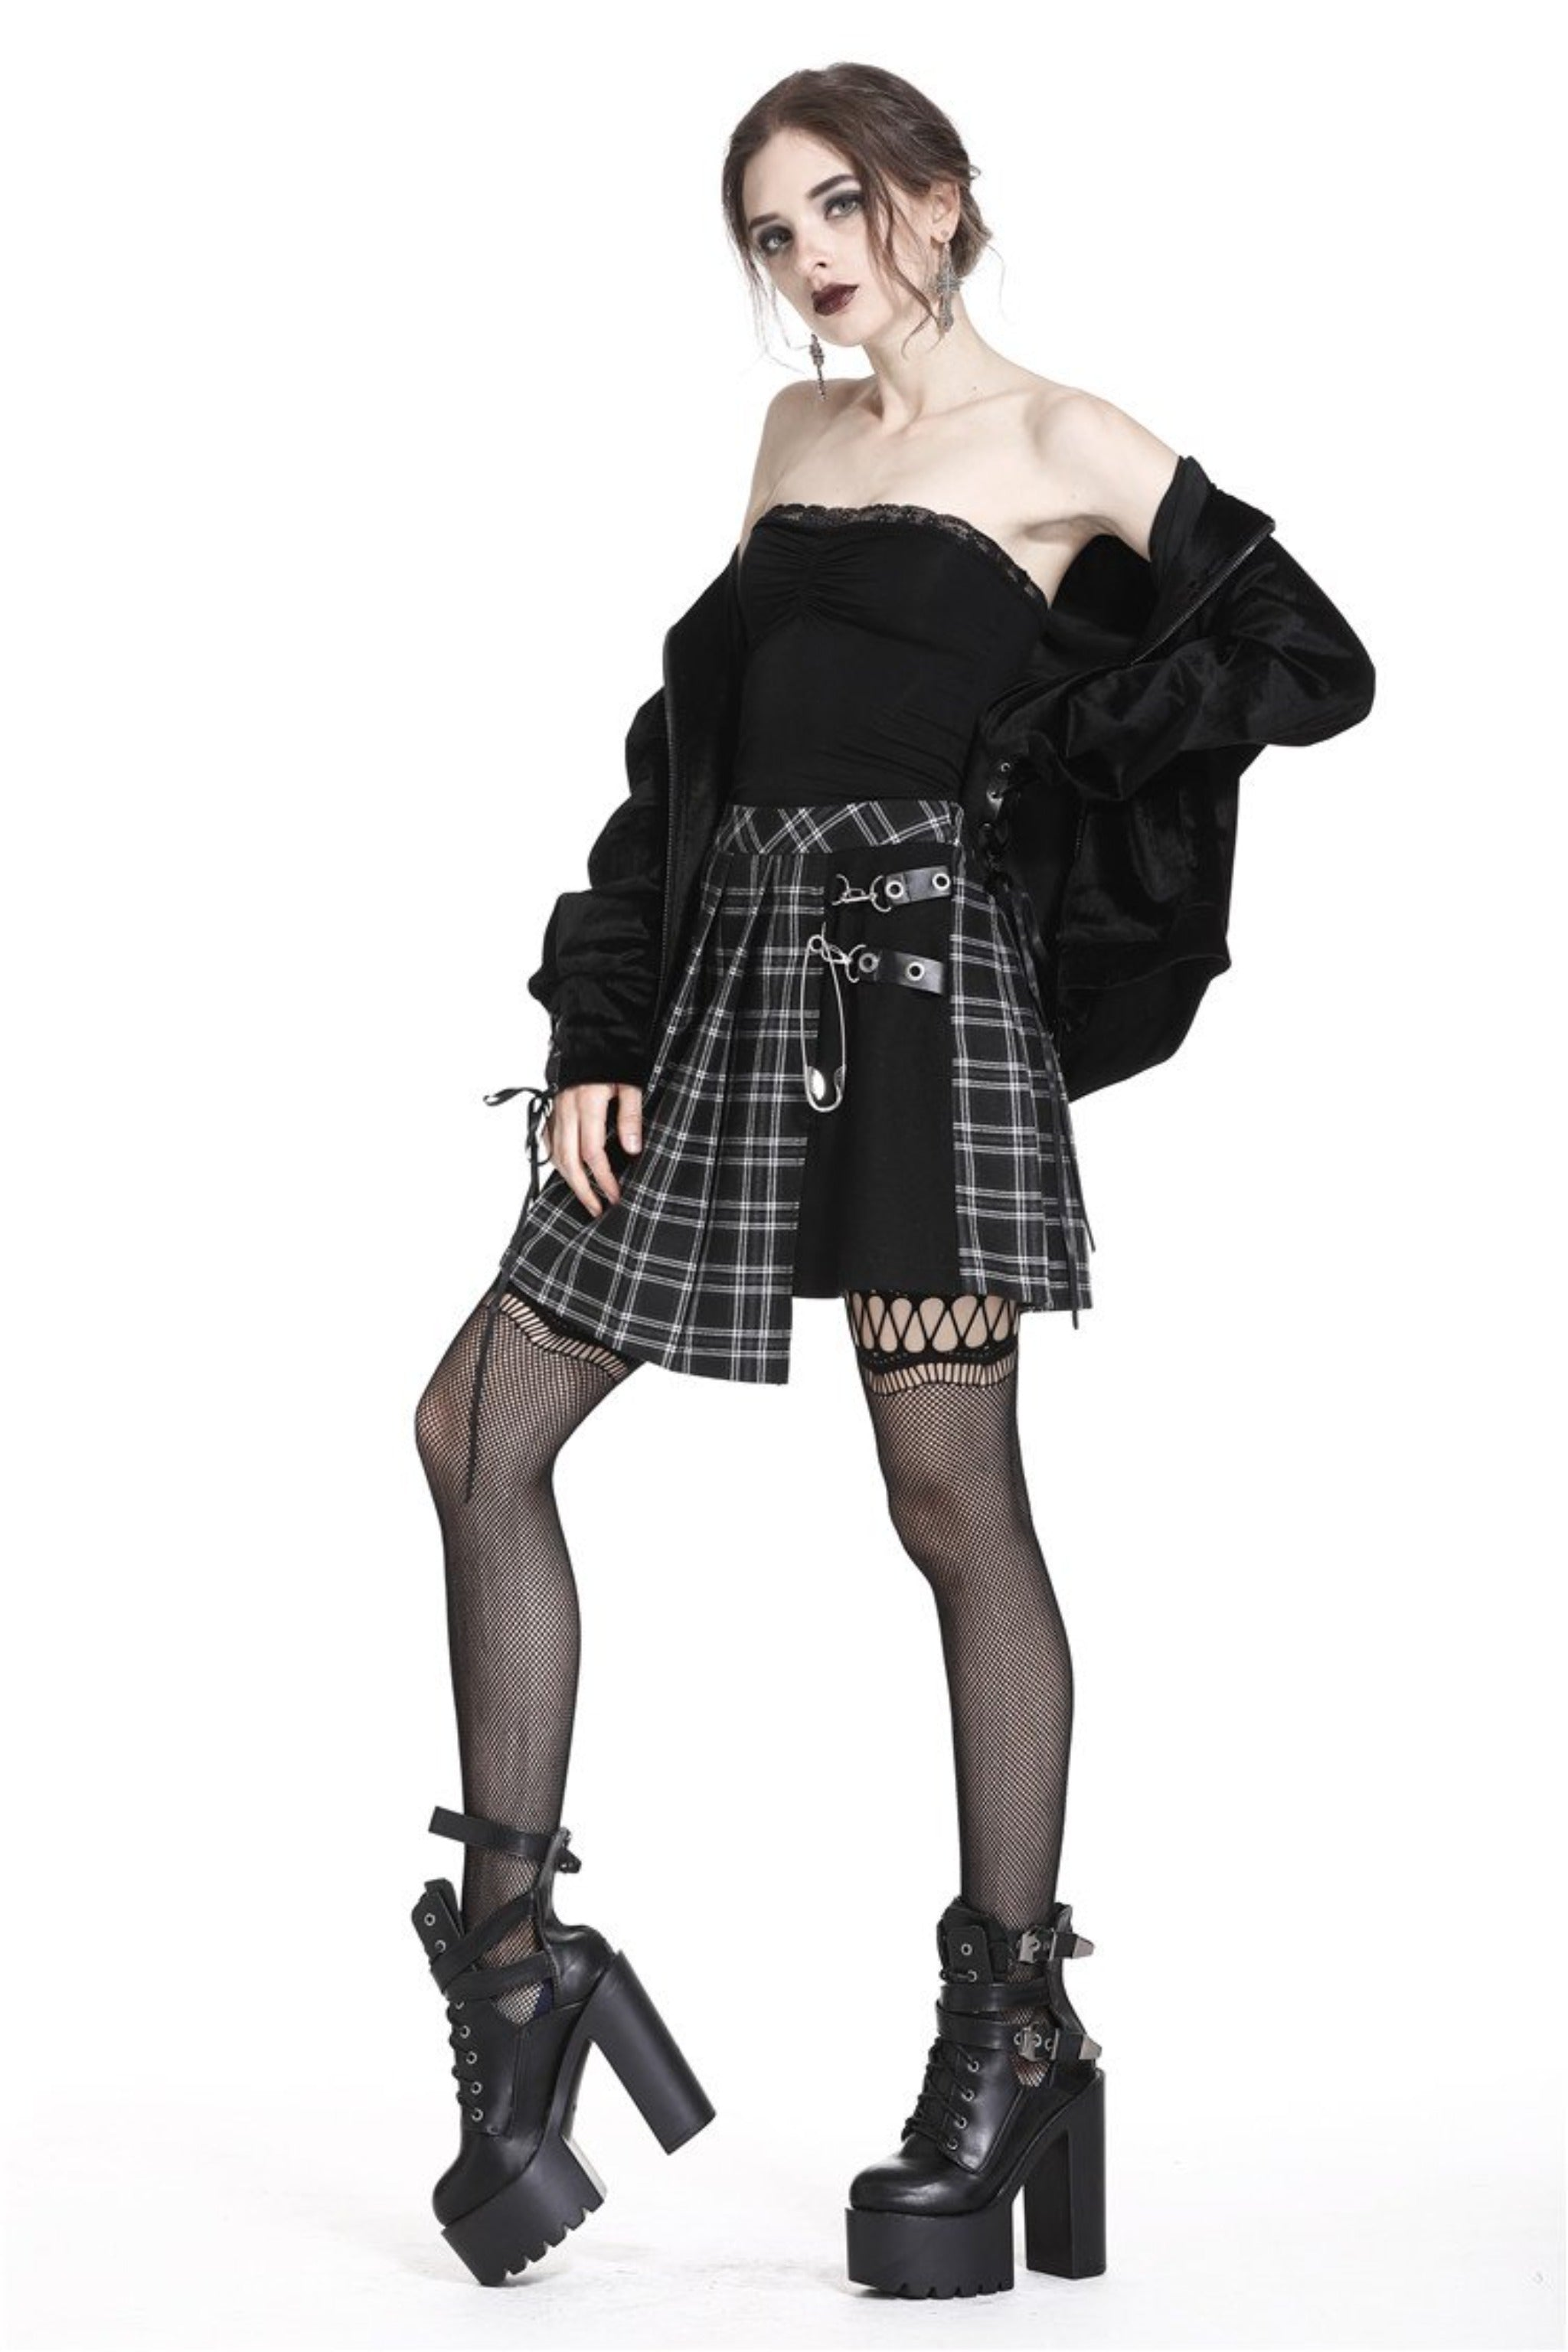 The Punk Plaid Skirt - Goth Mall